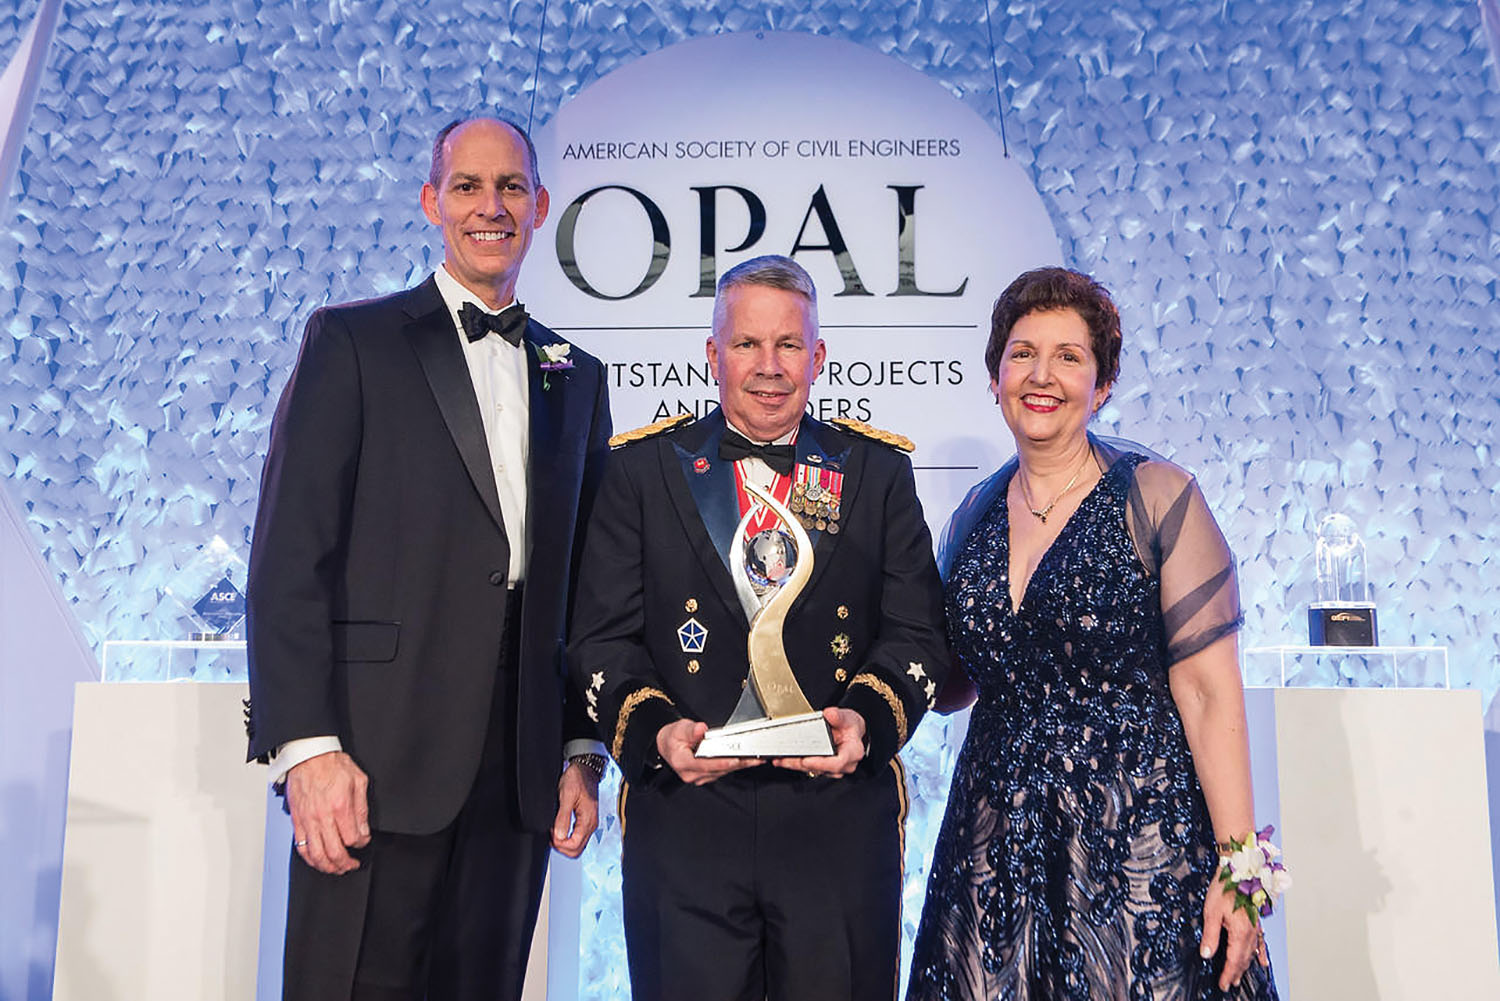 The OPAL award was presented on March 14, during ASCE's annual OPAL Gala in Arlington, Va. Shown: Lt. Gen. Semonite poses with Thomas W. Smith III, ASCE executive director, and Robin A. Kemper, ASCE 2019 president. (Jason Dixon Photography)